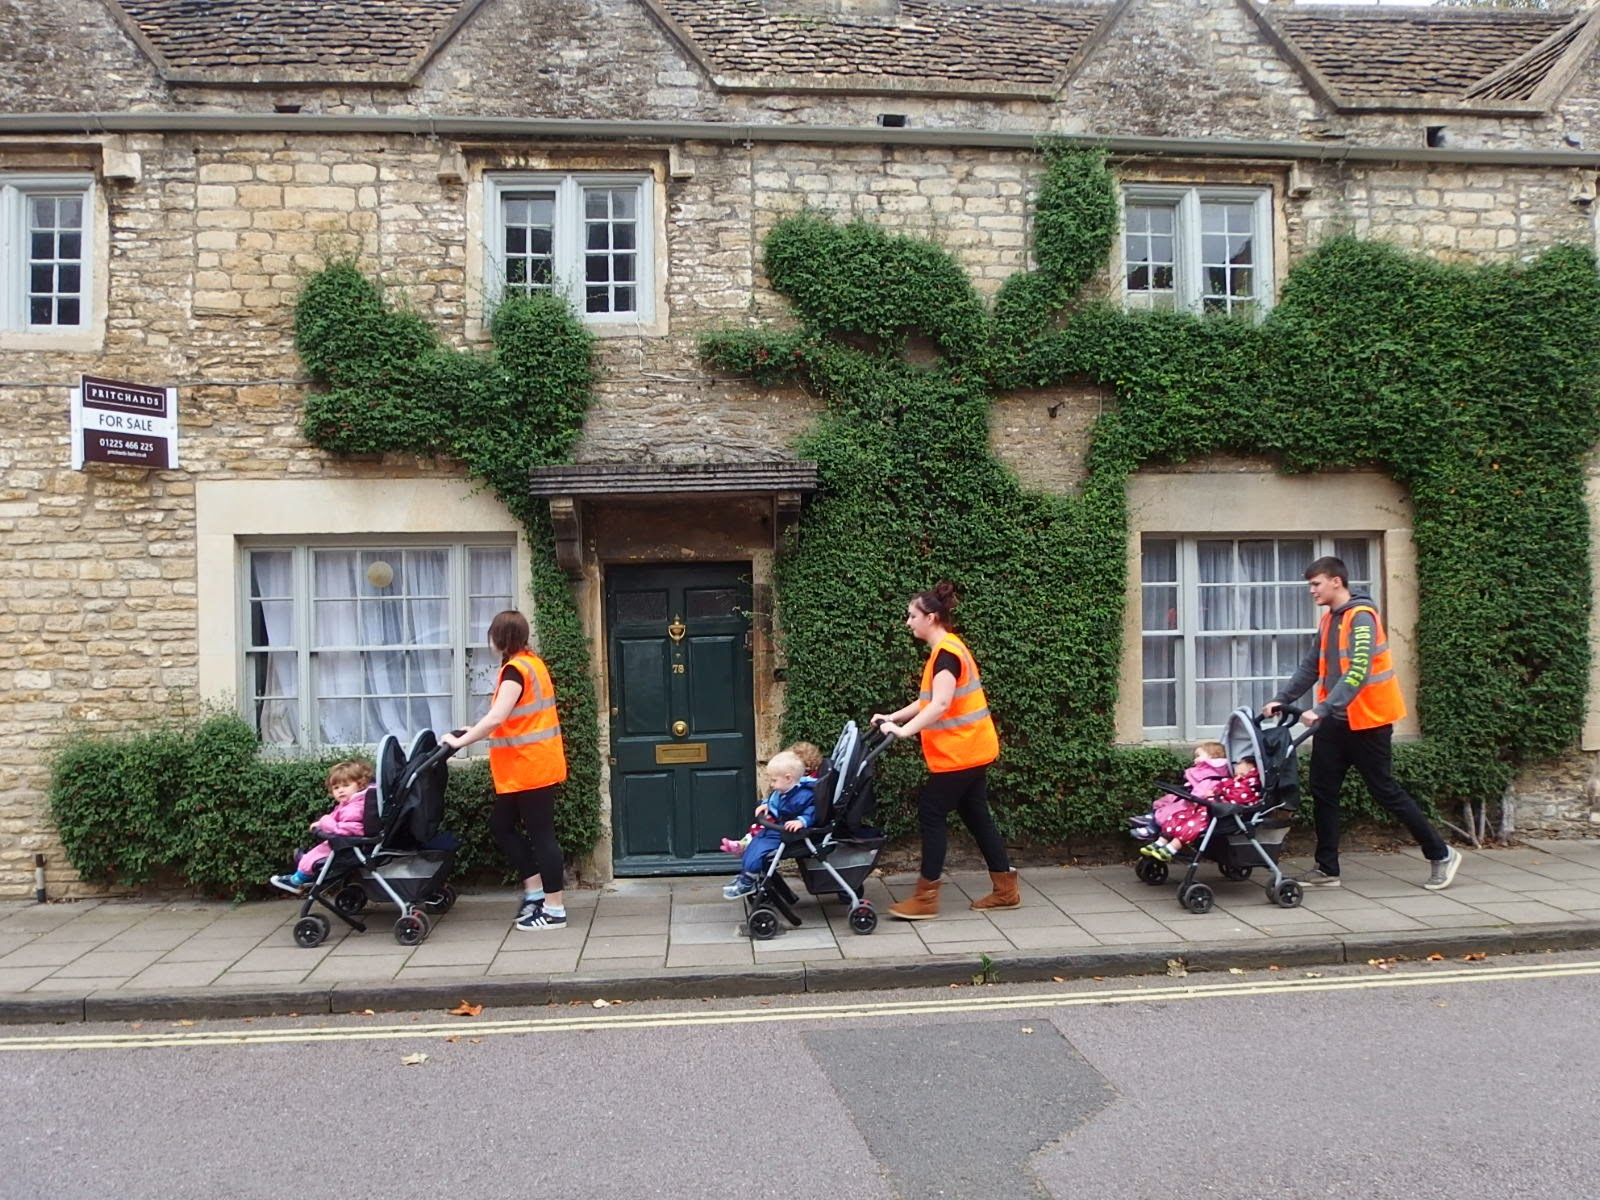 A parade of pushchairs go past a house clad in Cotoneaster in Corsham, Wiltshire